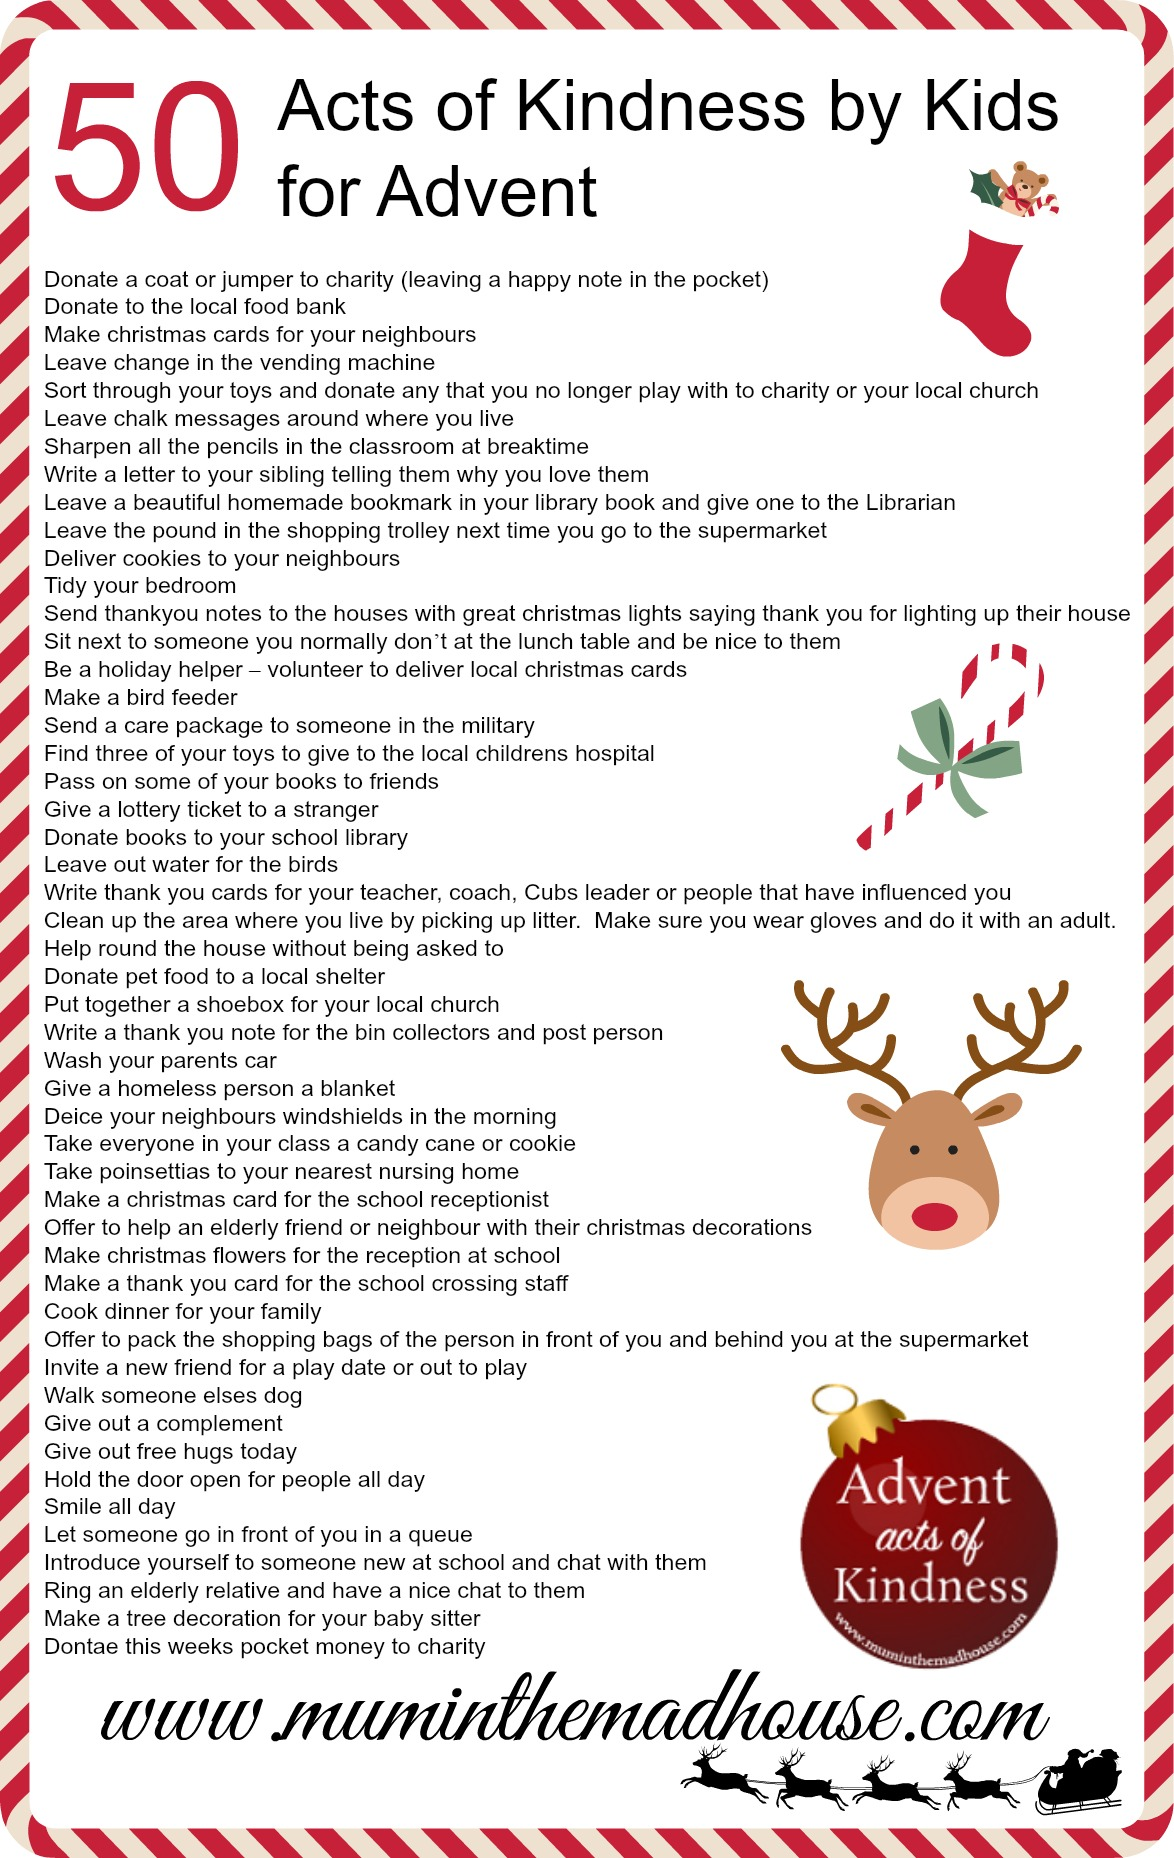 Advent Calendar List Ideas : An alternative advent calendar acts of kindness by kids